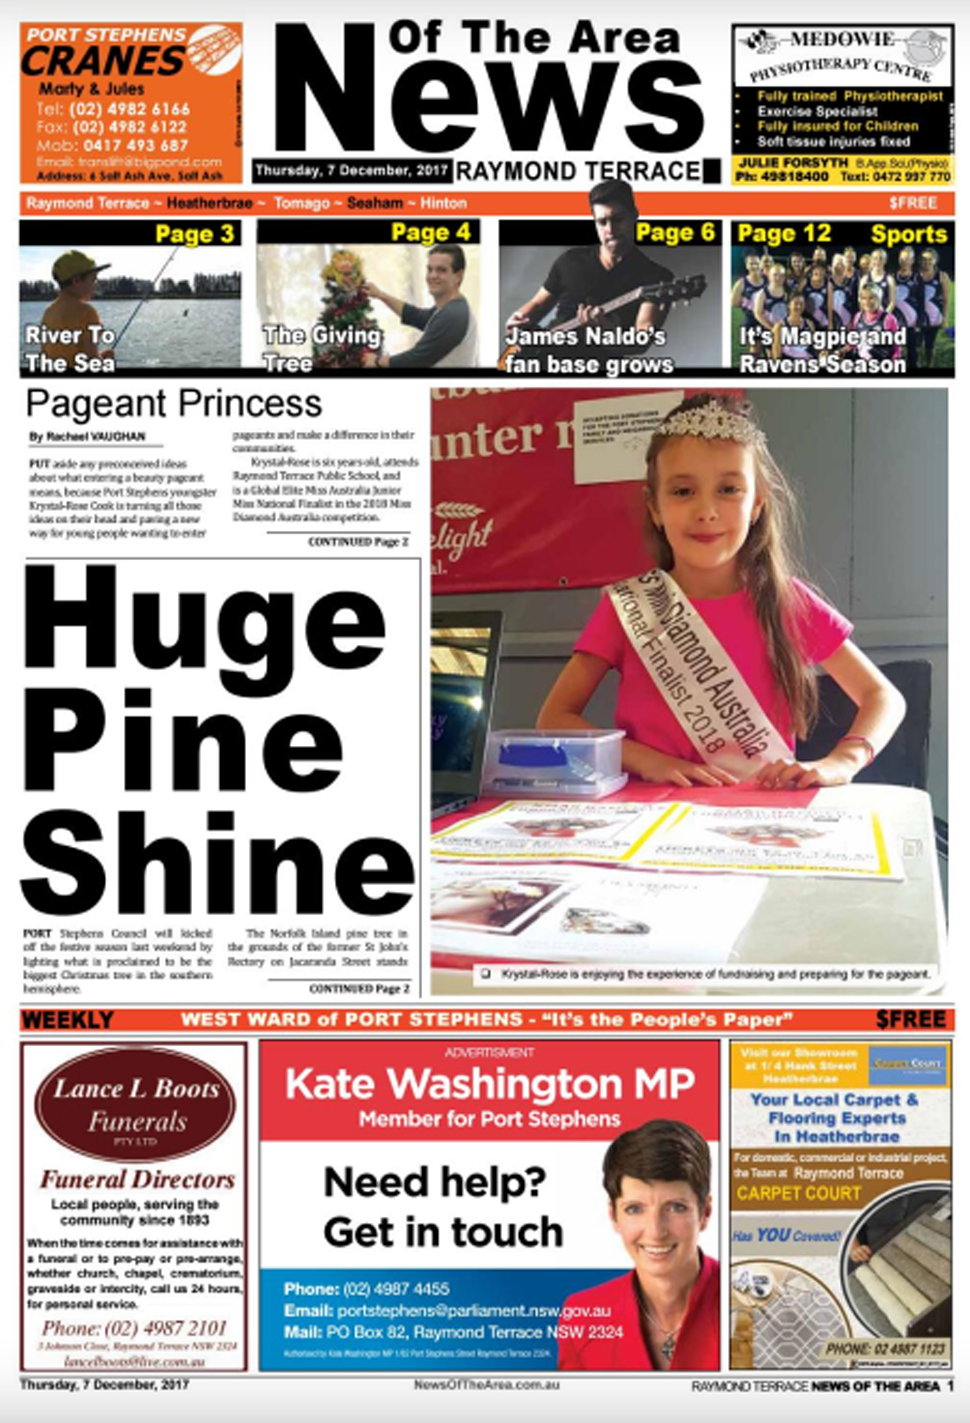 raymond terrace news of the area 7 december 2017 news